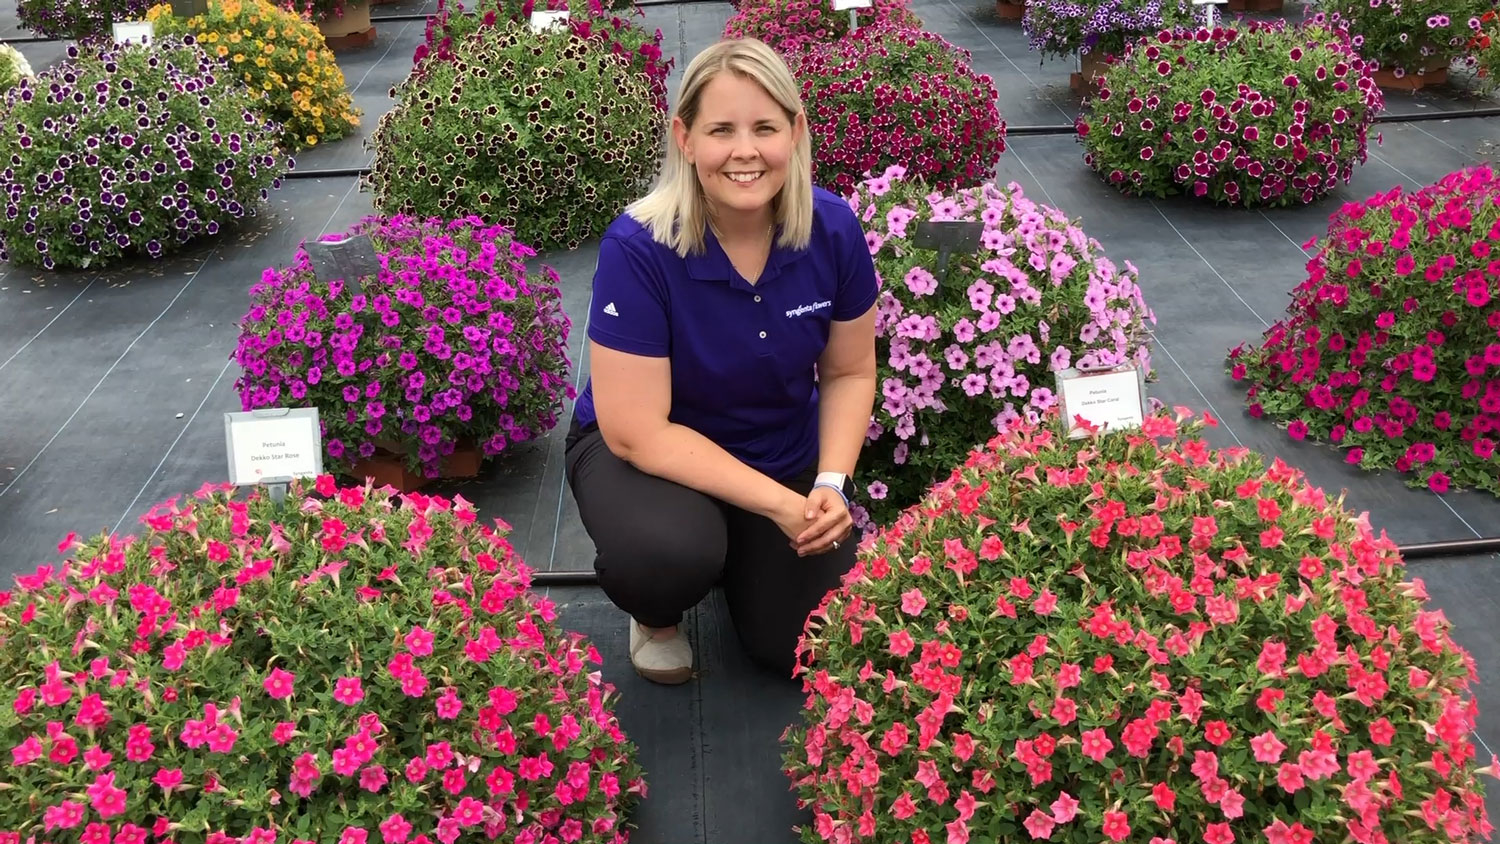 A blonde woman kneeling down next to large pots of bedding flowers.